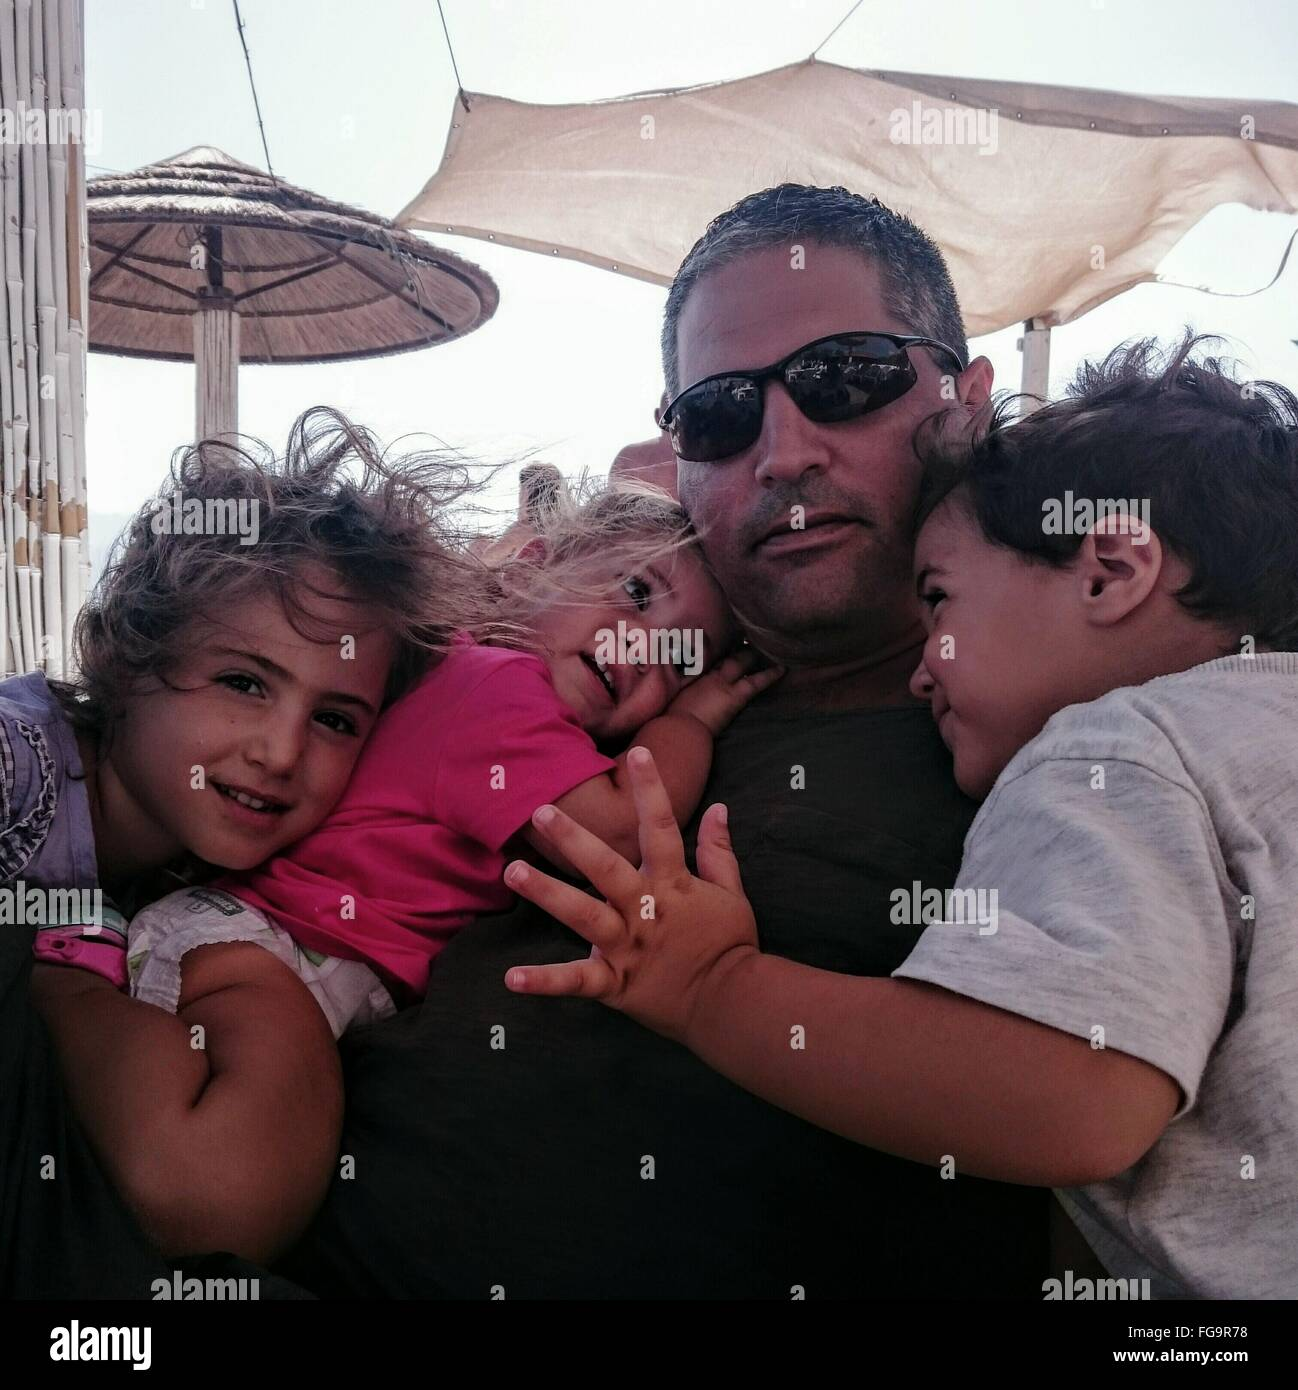 Father With Children - Stock Image